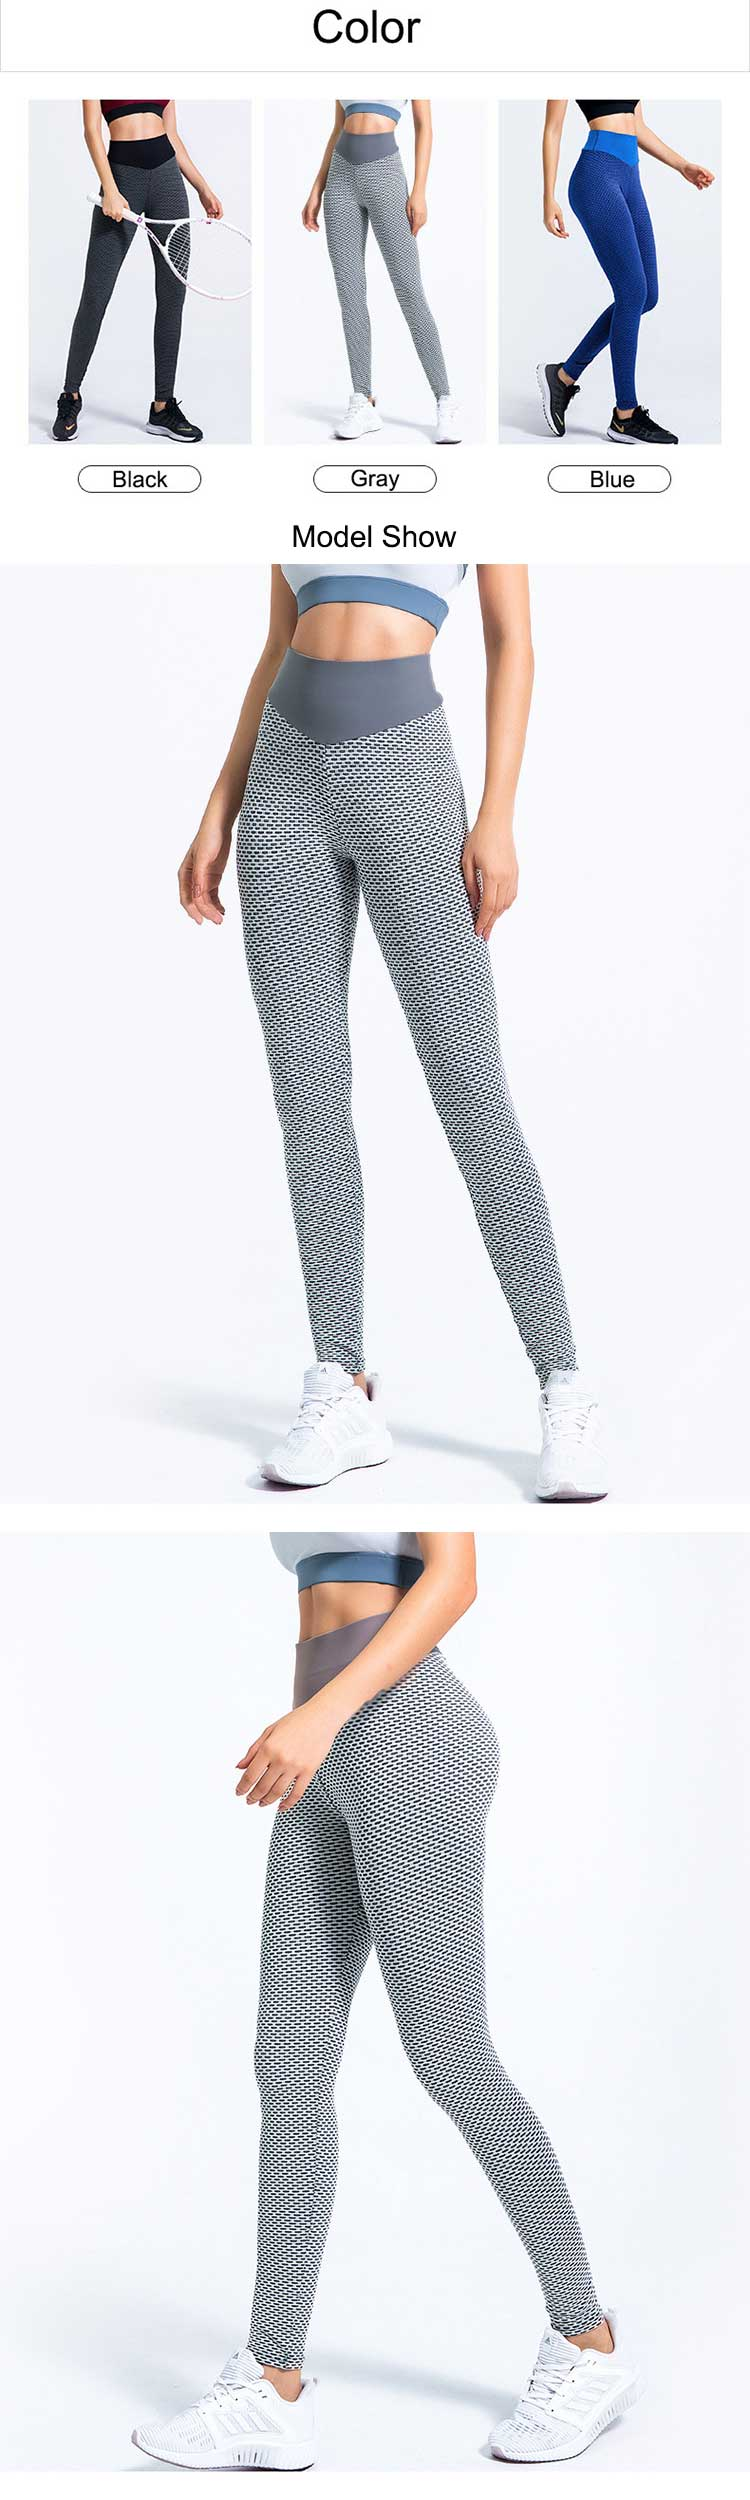 This-kind-of-fitness-pants-not-only-has-good-elasticity,-but-also-has-high-resilience.